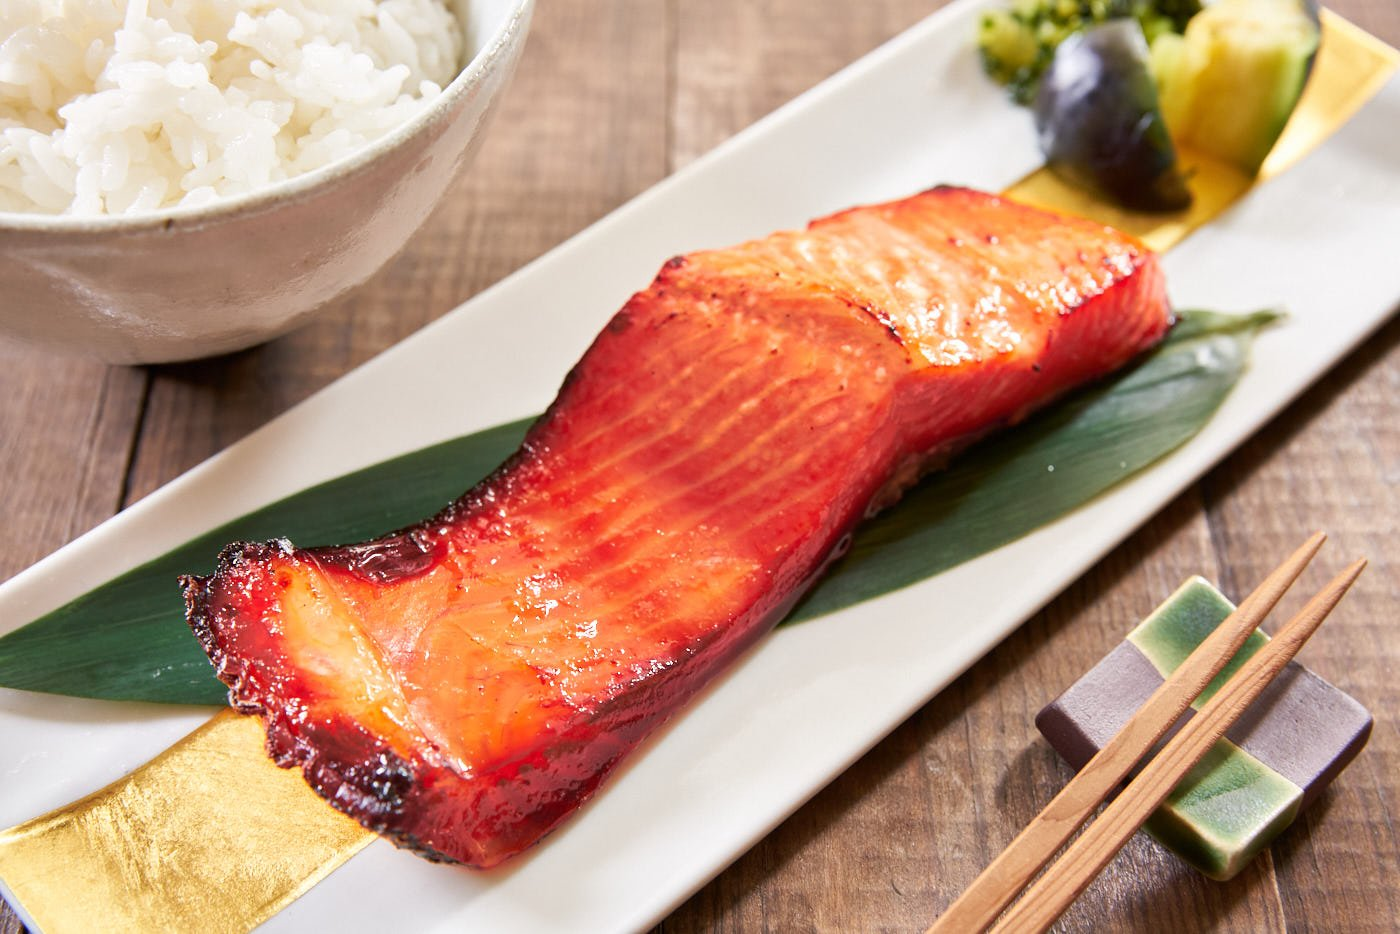 Cured with just 3 simple ingredients, this flavorful Japanese Miso Salmon is the perfect prep-ahead weeknight meal.